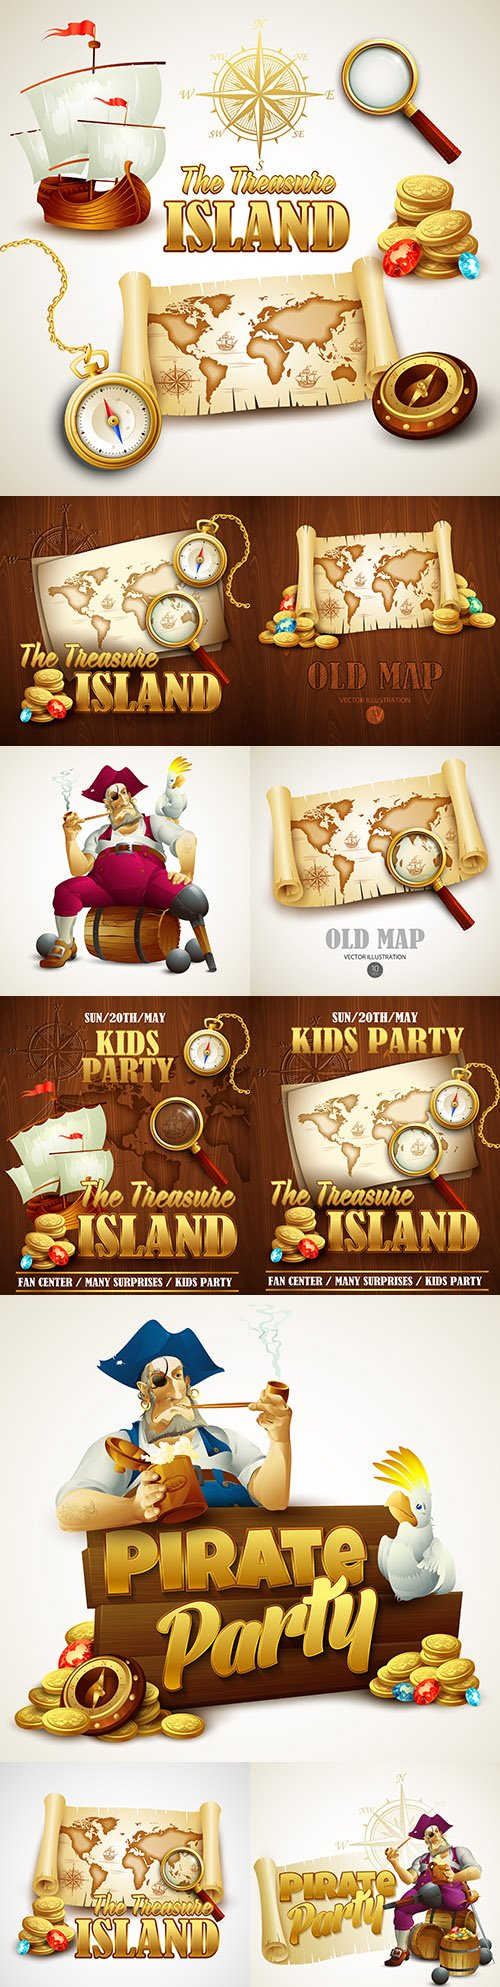 Treasure Island map and pirate party poster template